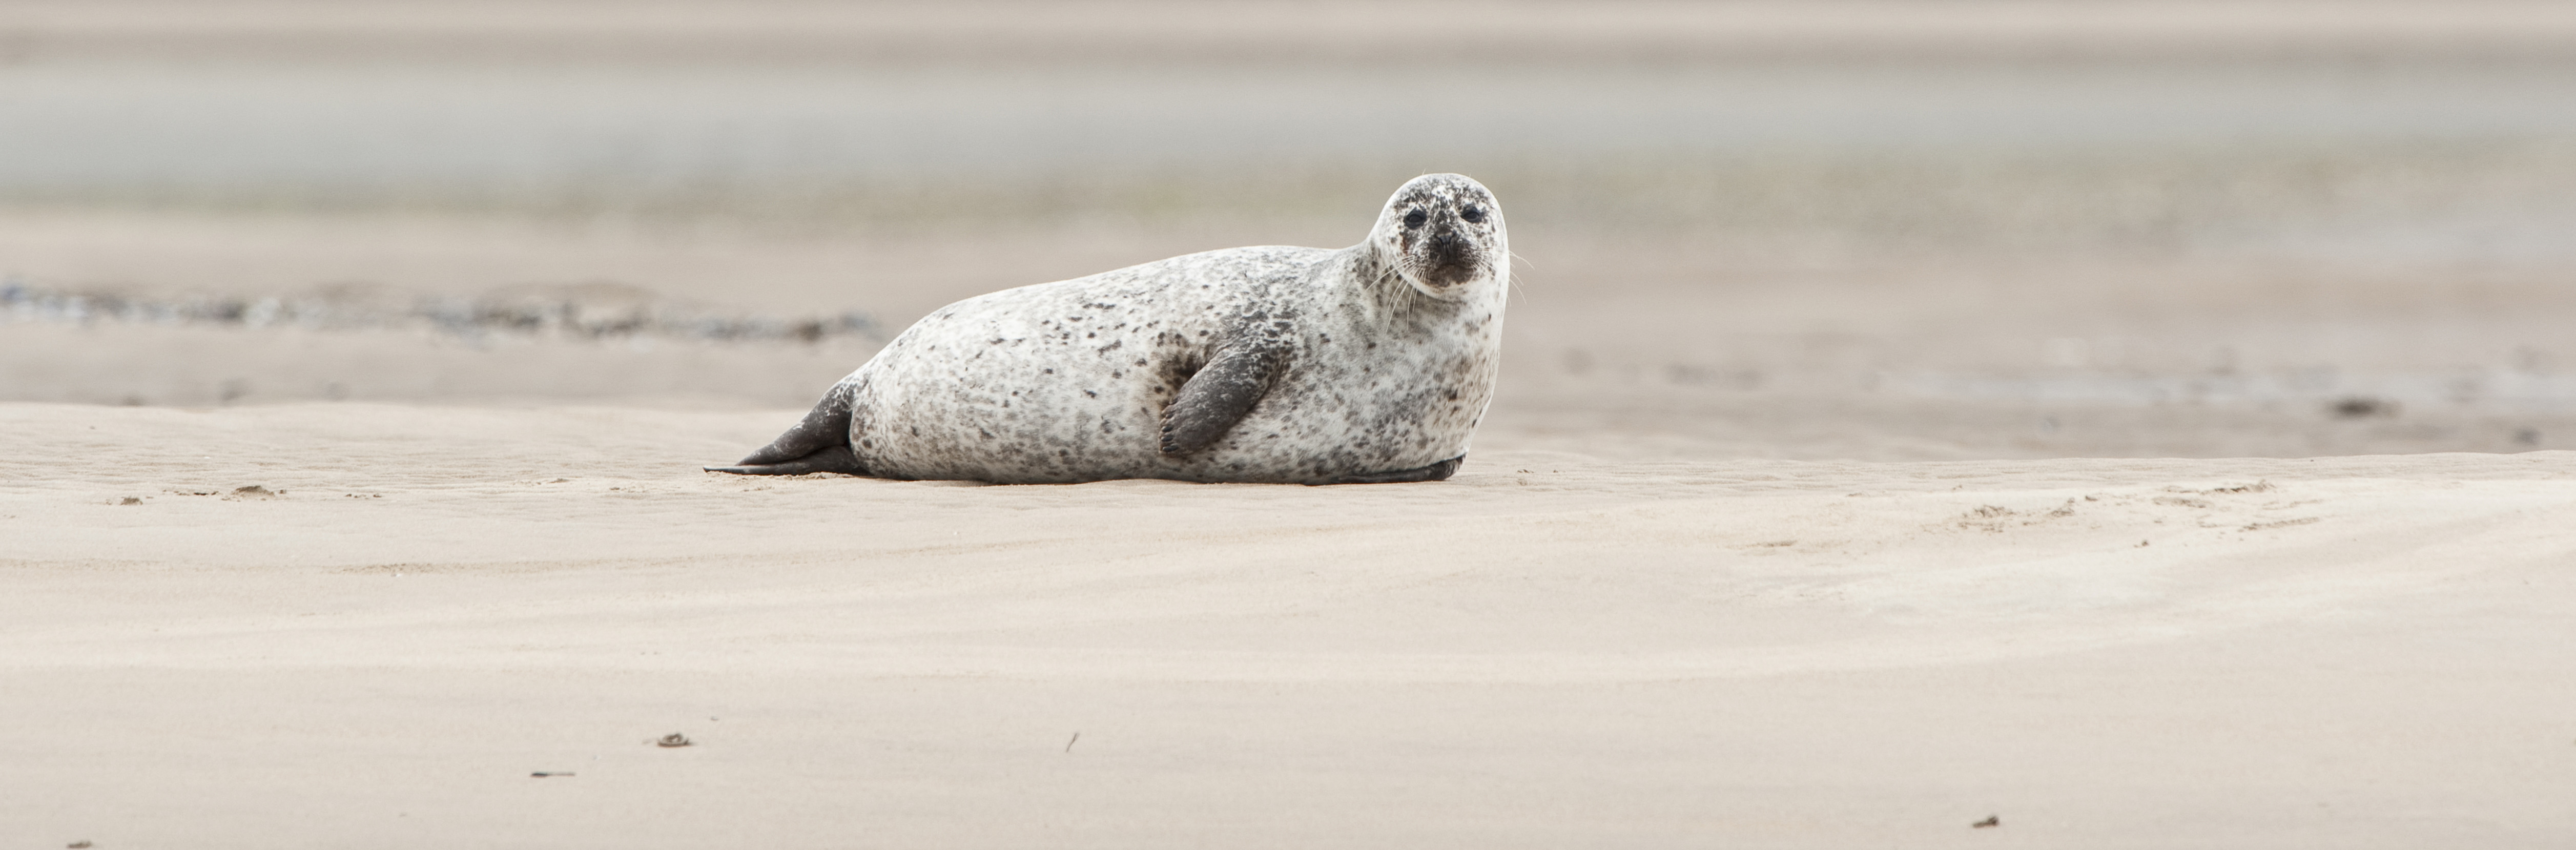 Seal near Goldspie, GB-SCT ©Johannes Ratermann